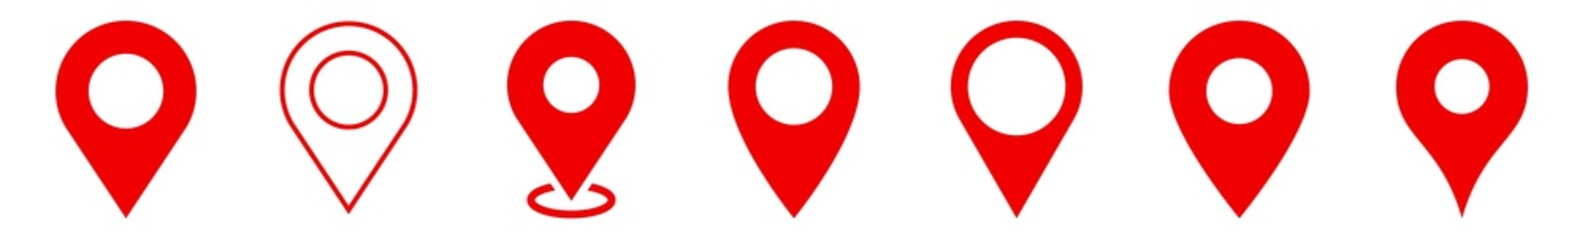 Location Pin Icon Red | Map Marker Illustration | Destination Symbol | Pointer Logo | Position Sign | Isolated | Variations